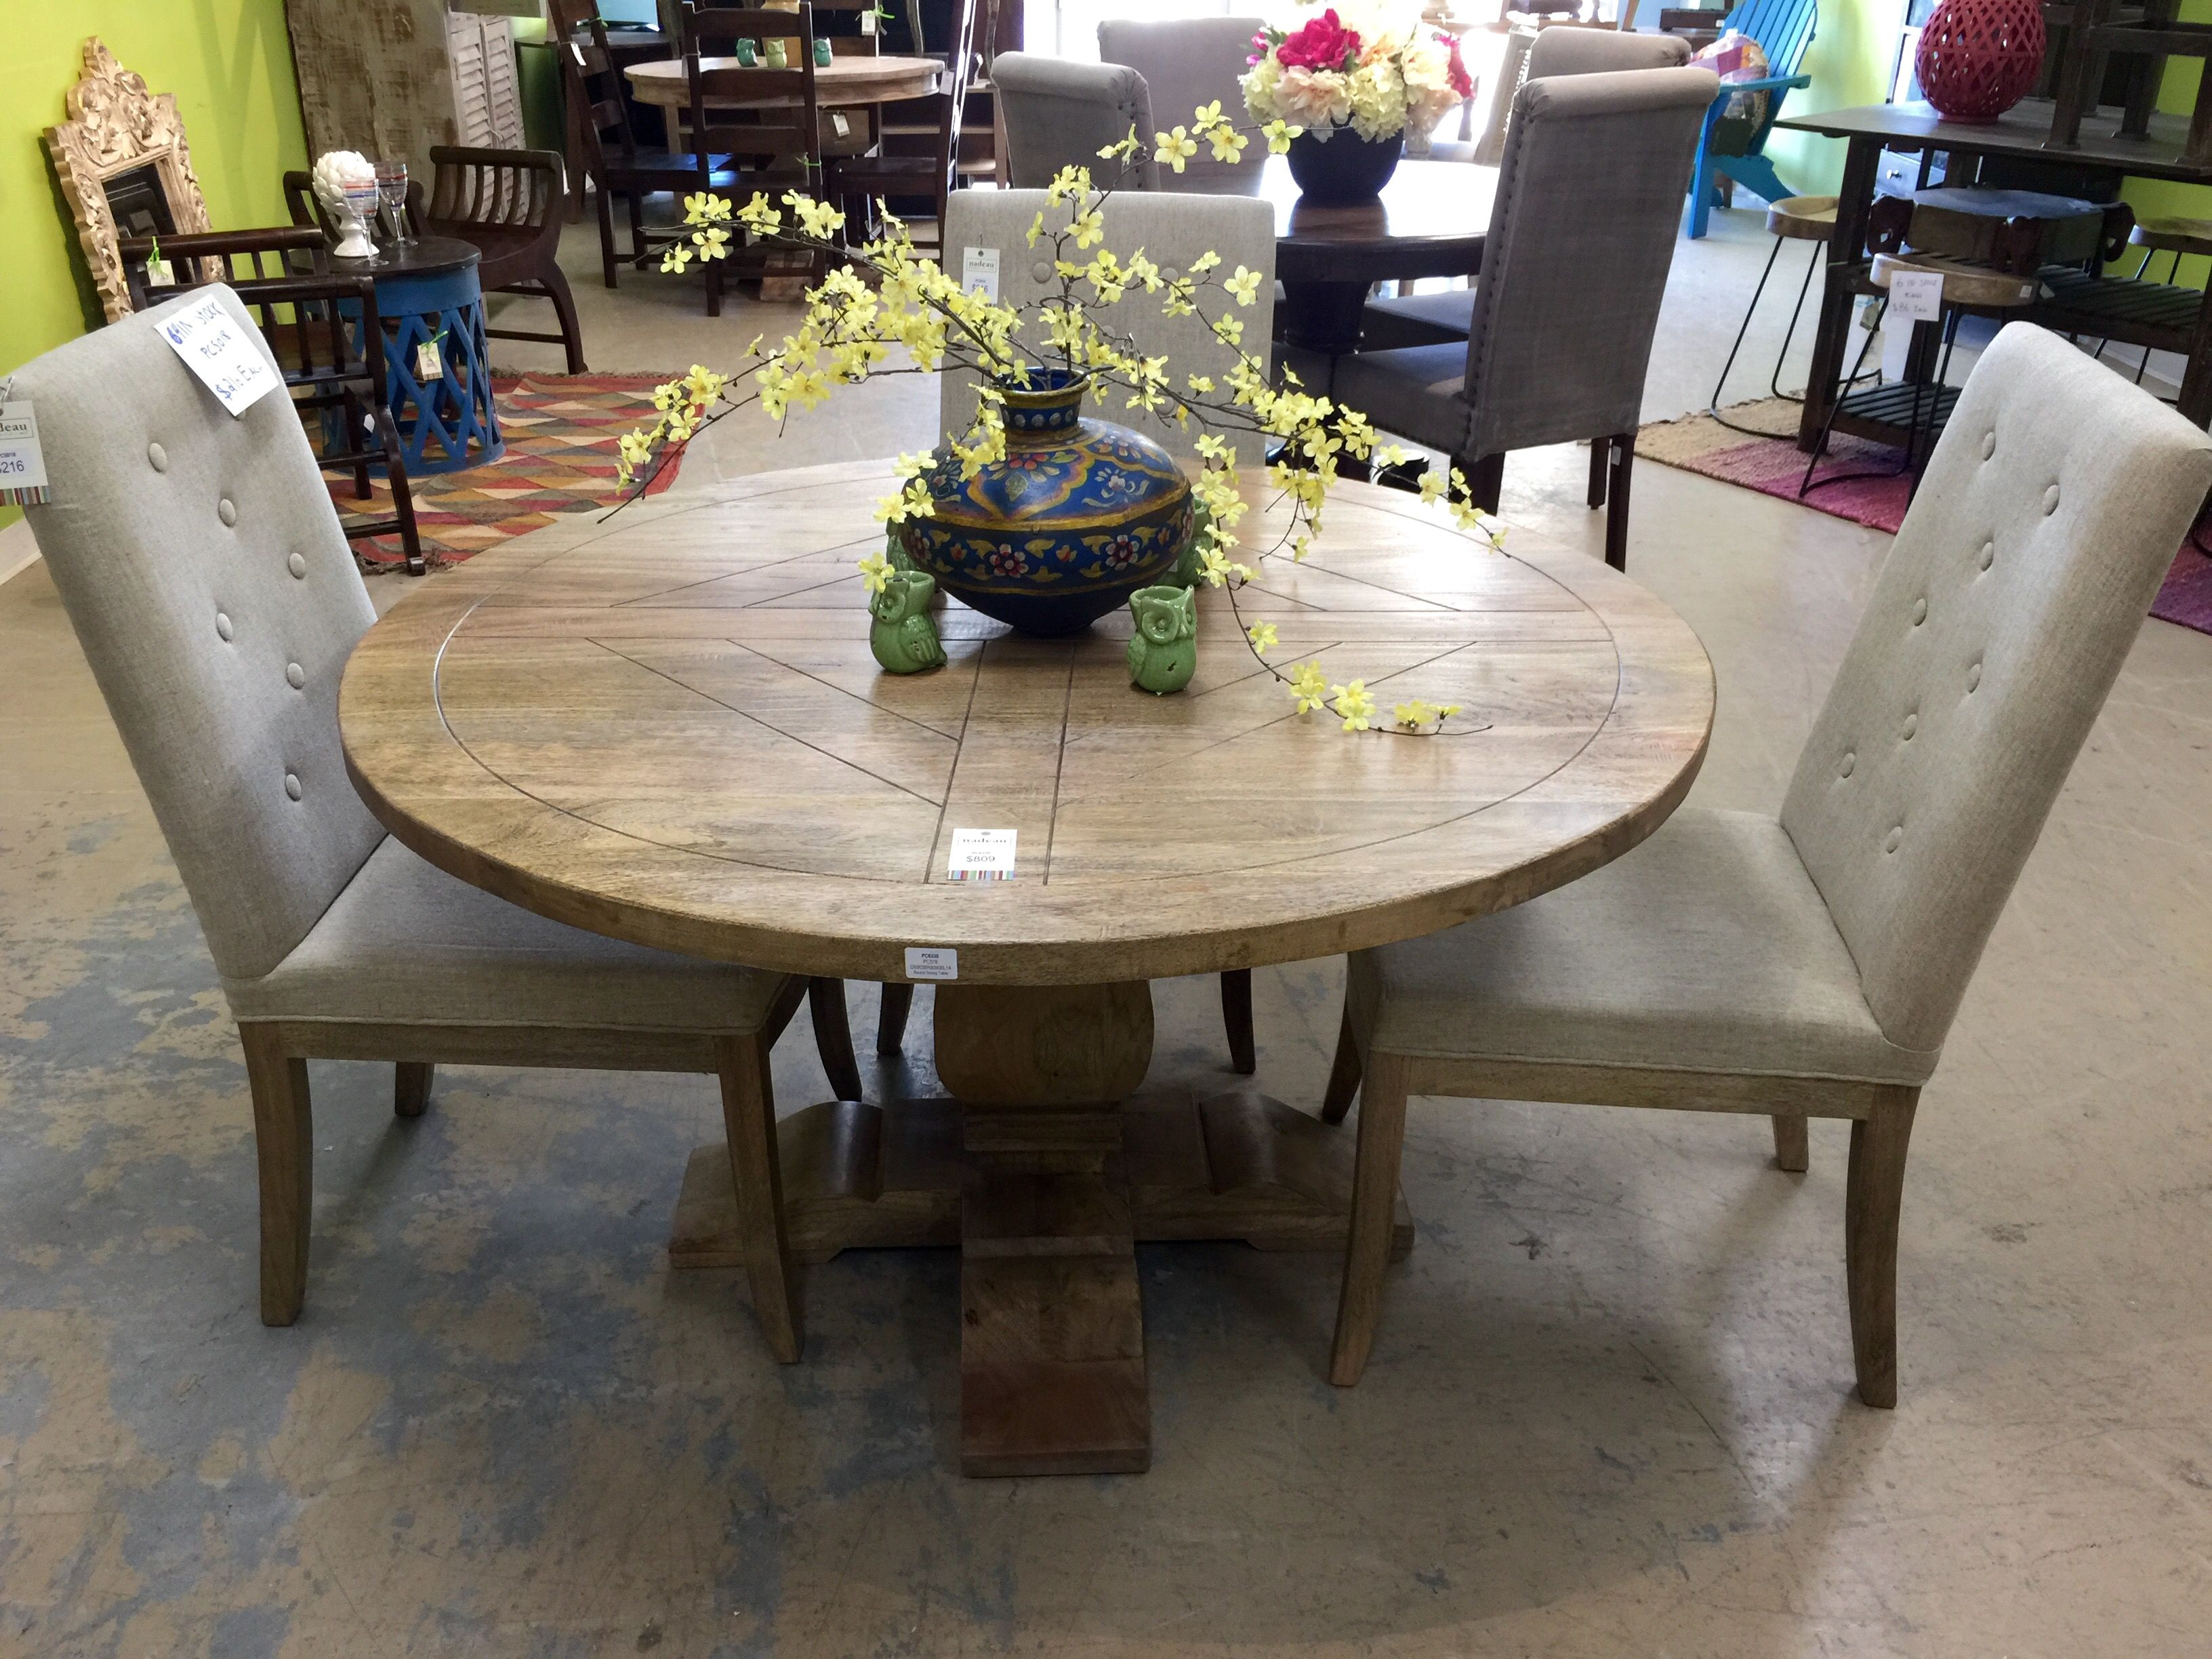 Classic rustic dining 54 round acacia wood table in vintage finish pc63335 bedford dining chairs pc5818 with vintage legs